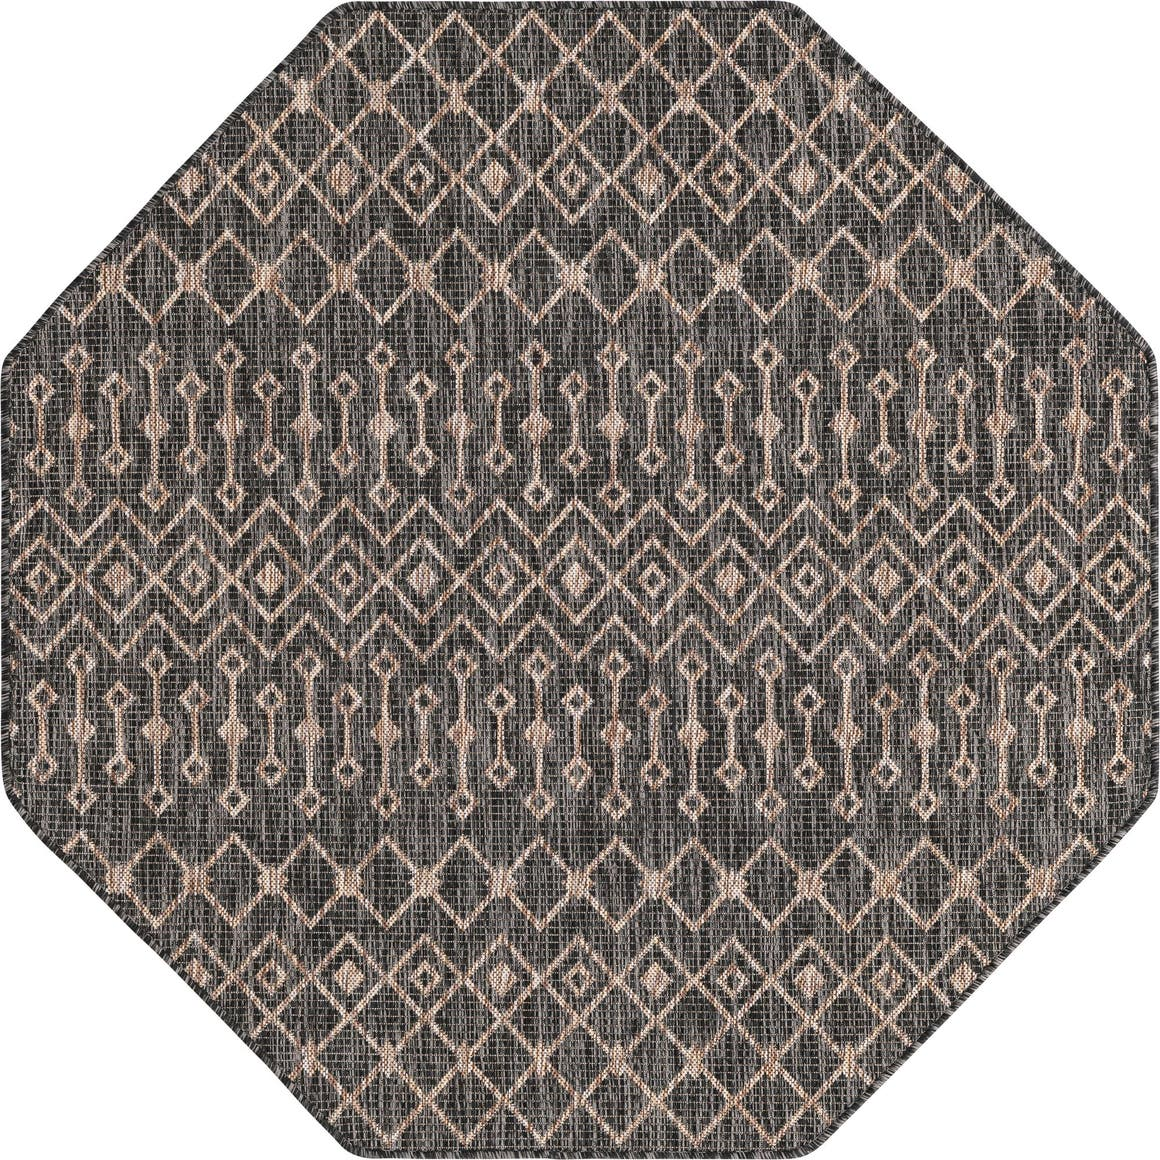 5' 3 x 5' 3 Outdoor Trellis Octagon Rug main image